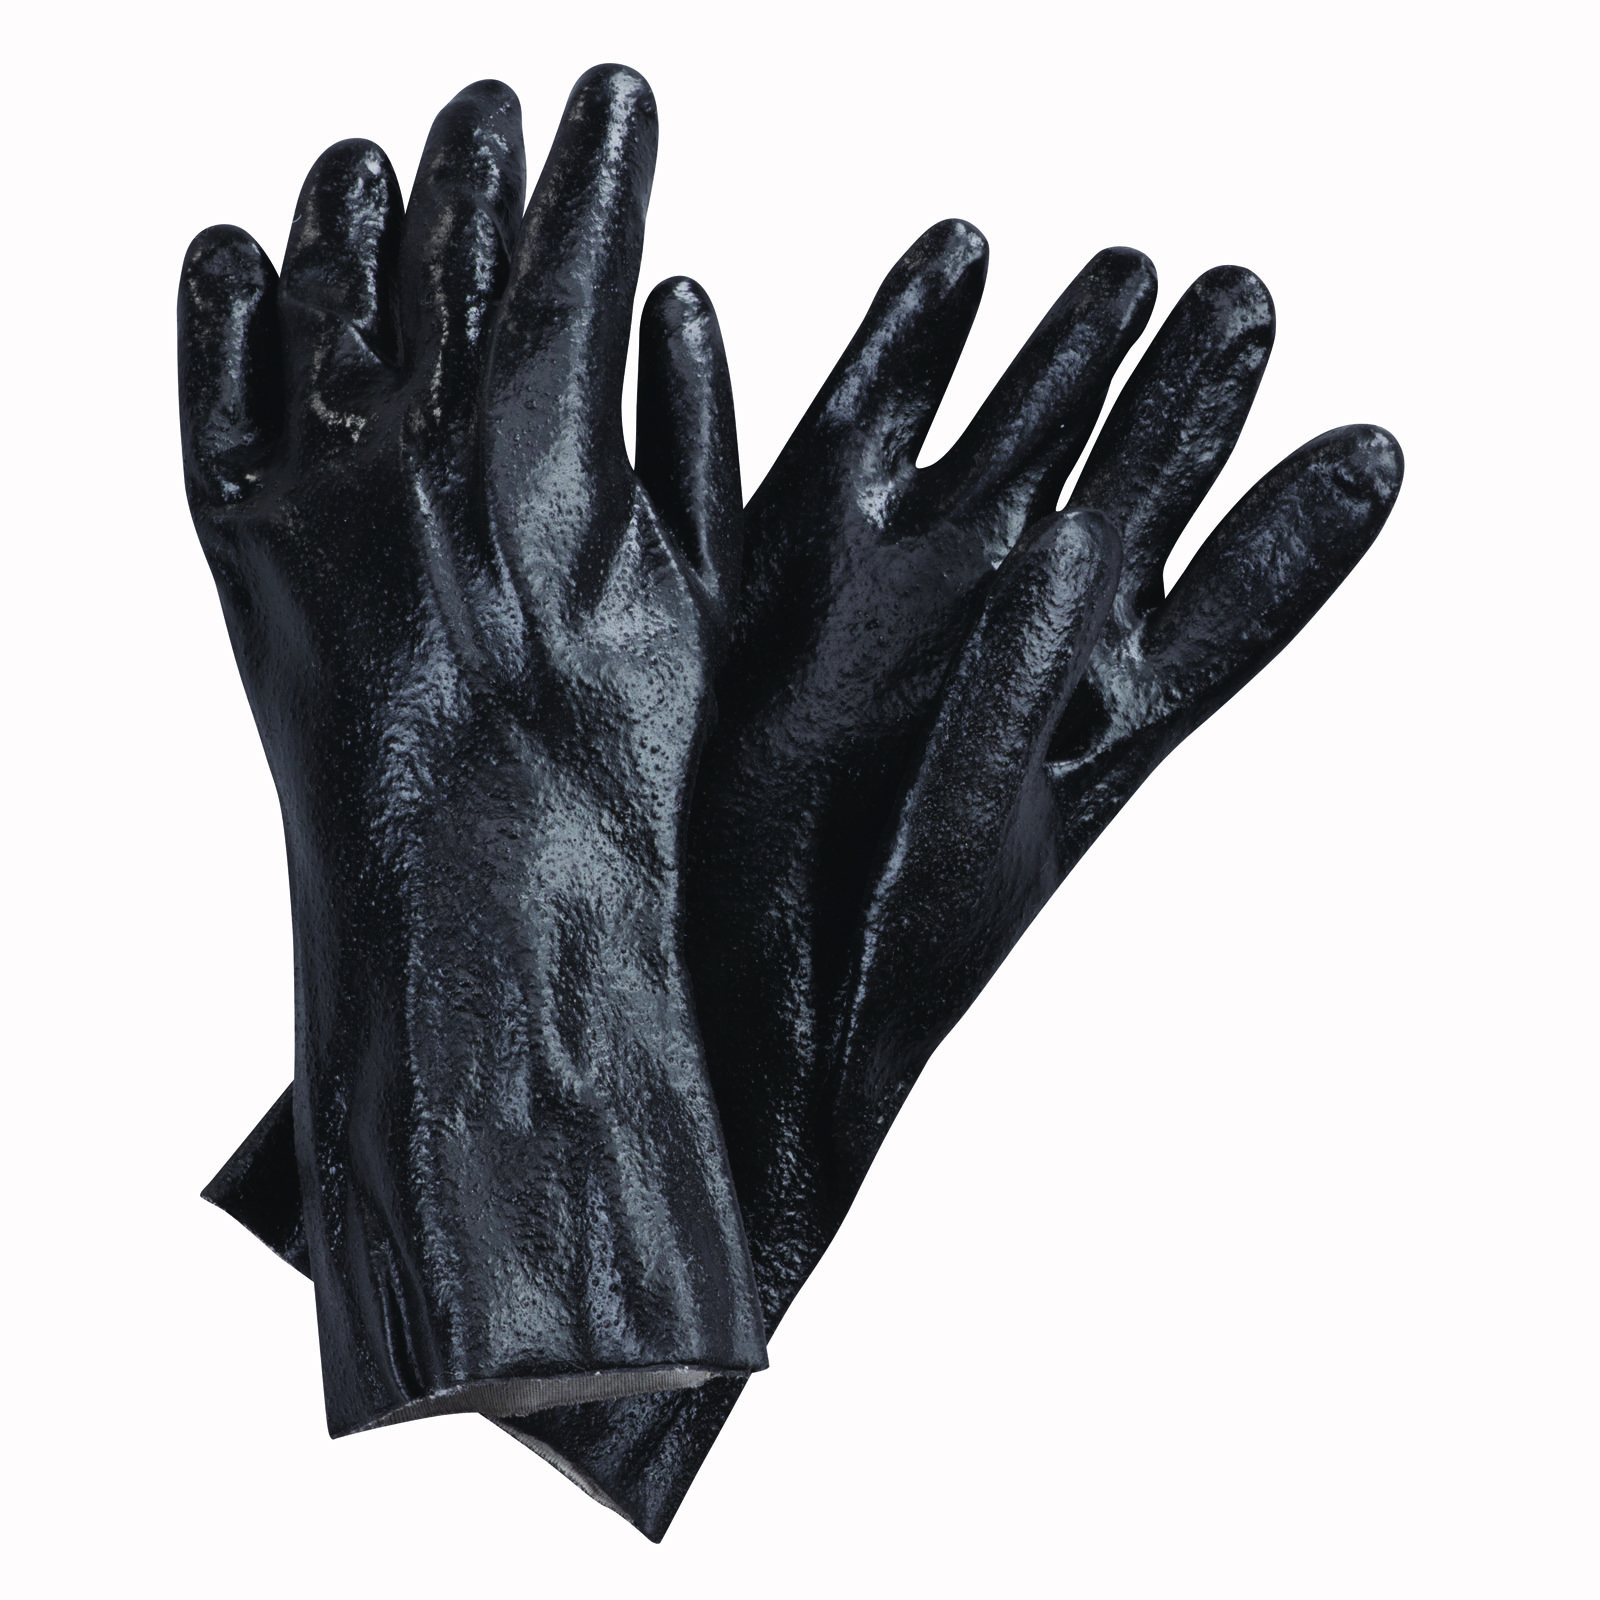 San Jamar 887 gloves, dishwashing / cleaning